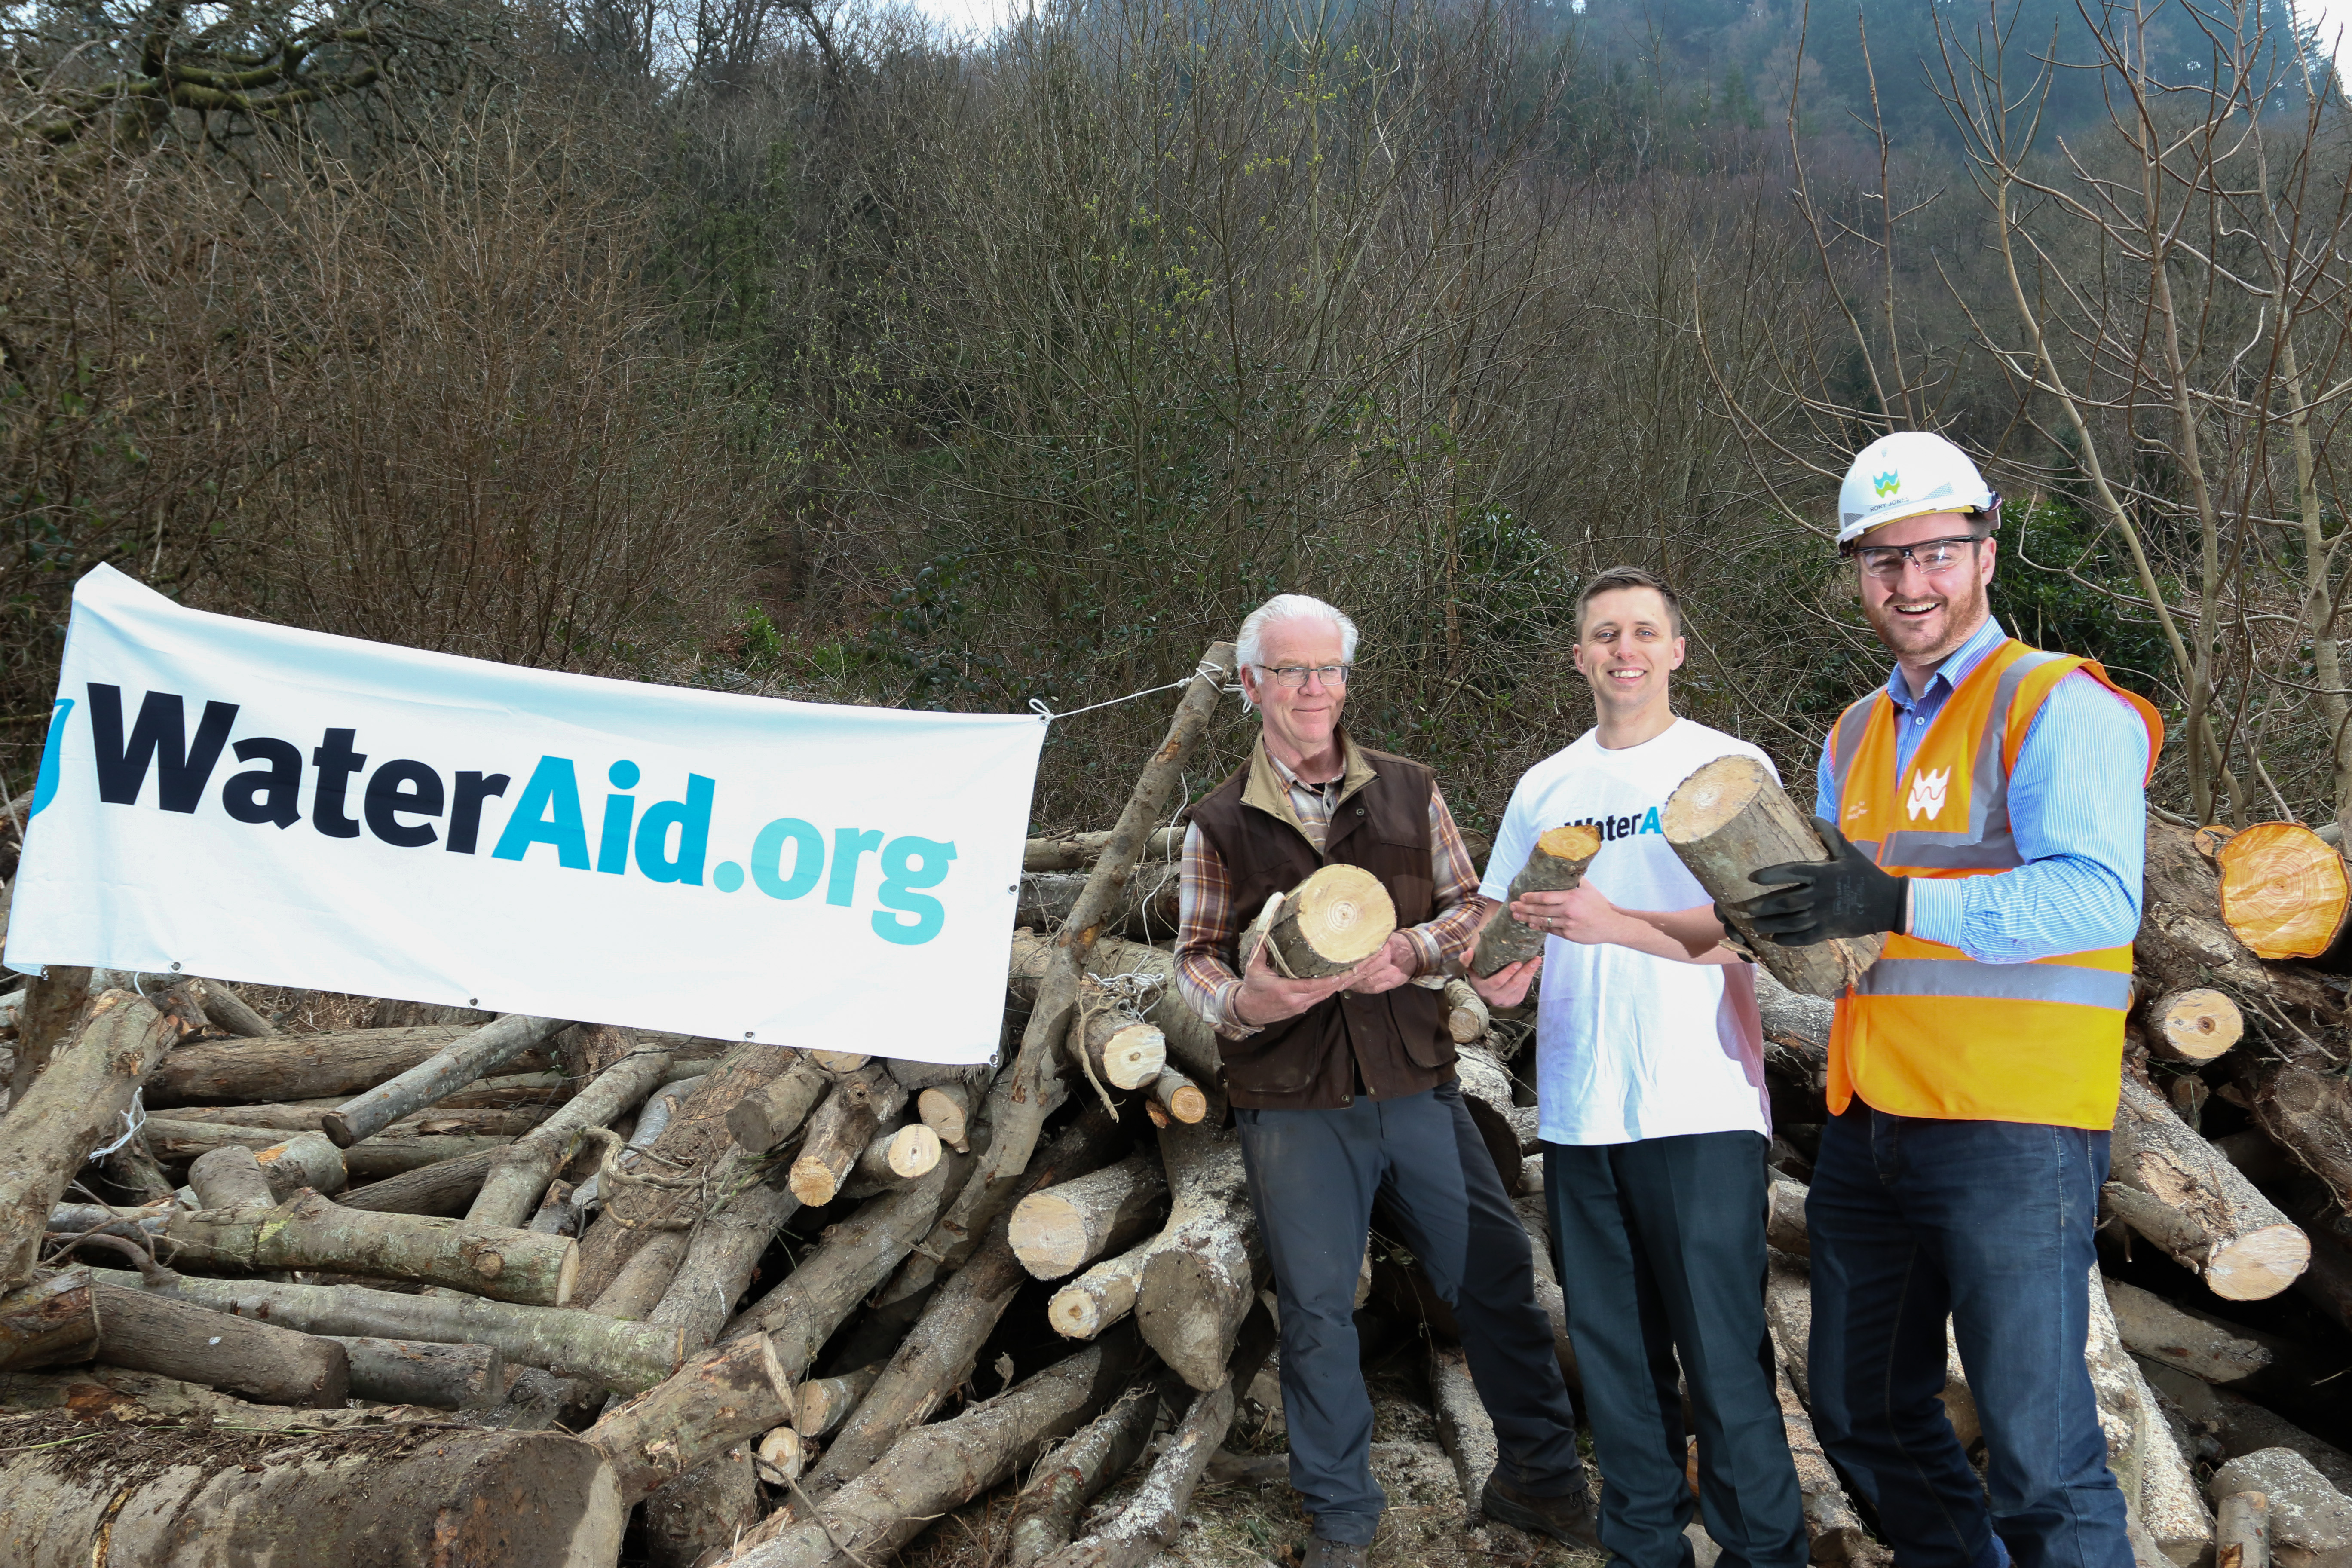 Welsh Water customers support WaterAid